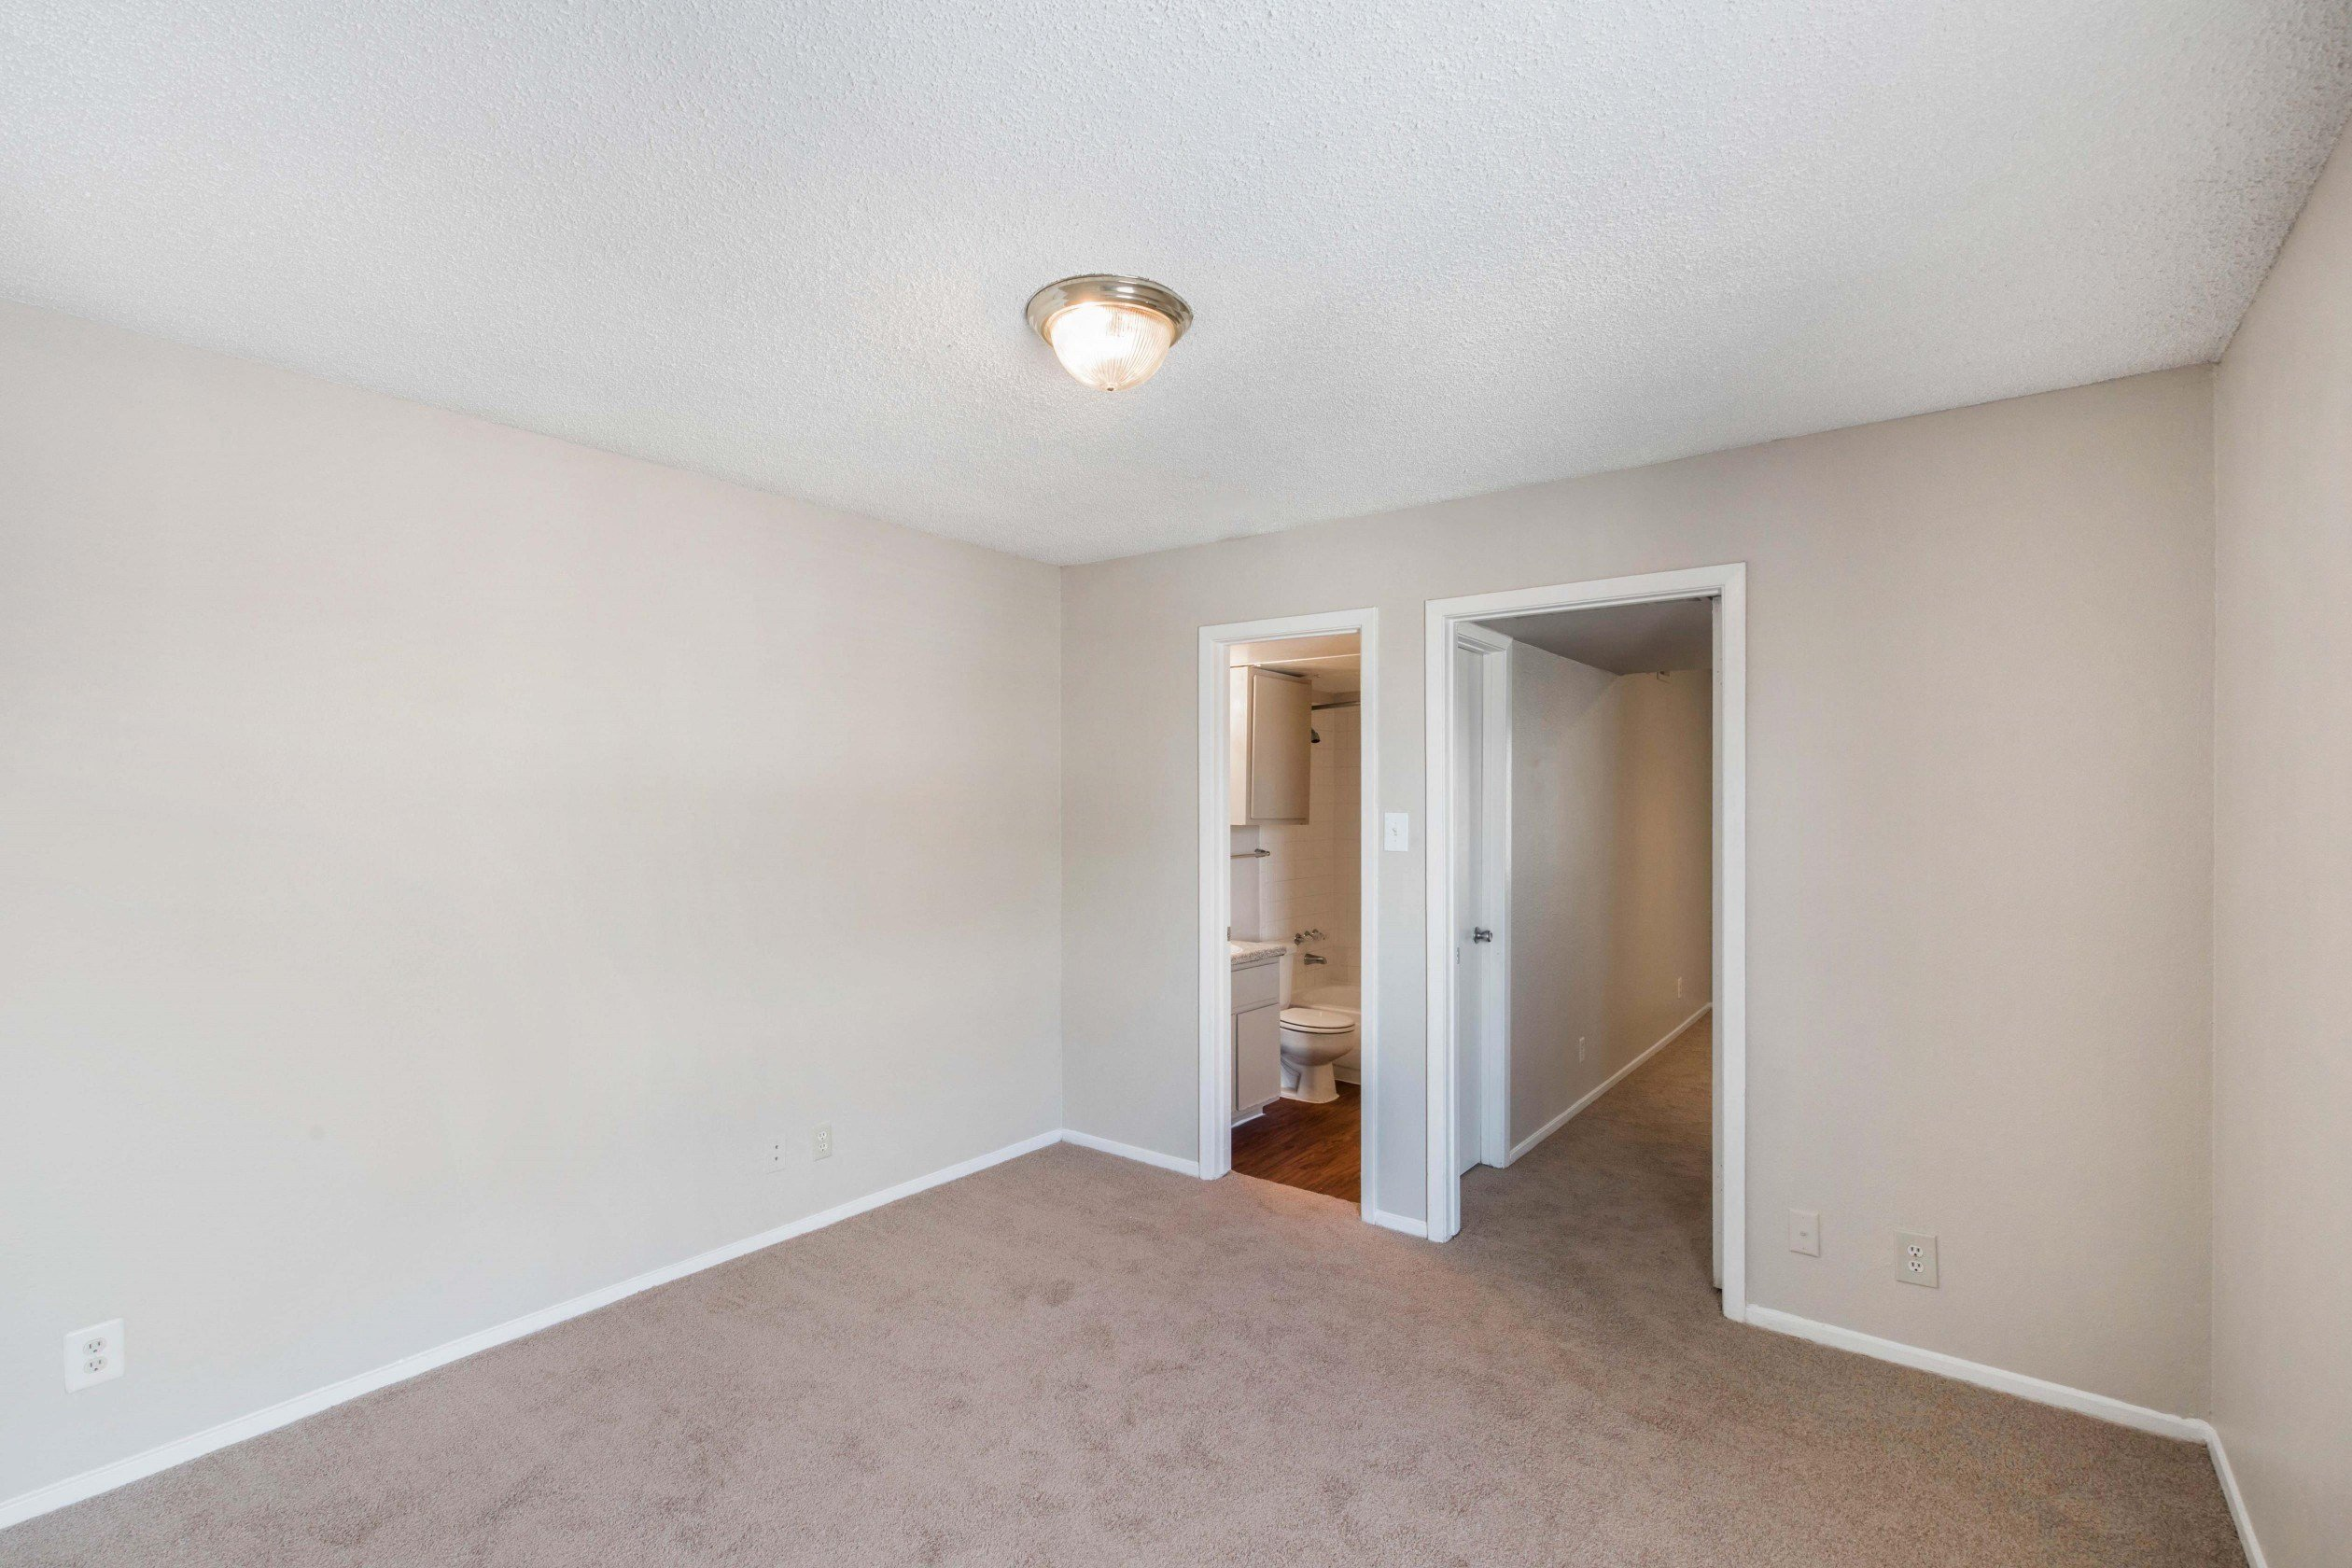 Bedroom with wall to wall carpet, eggshell white walls, white trim, and en-suite bathroom